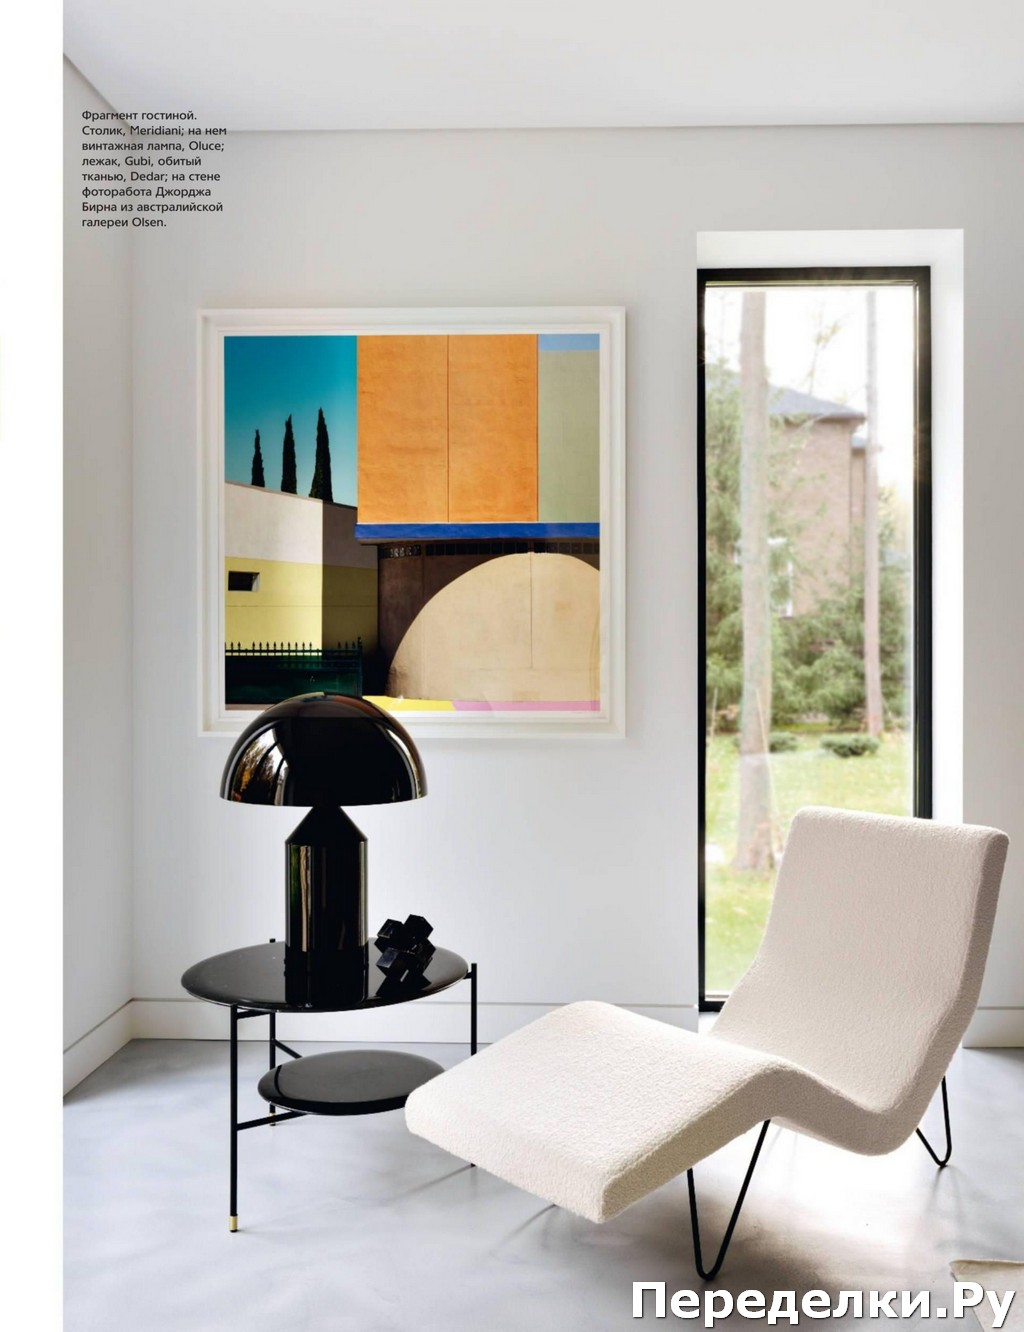 AD Architectural Digest 4 aprel 2020 138